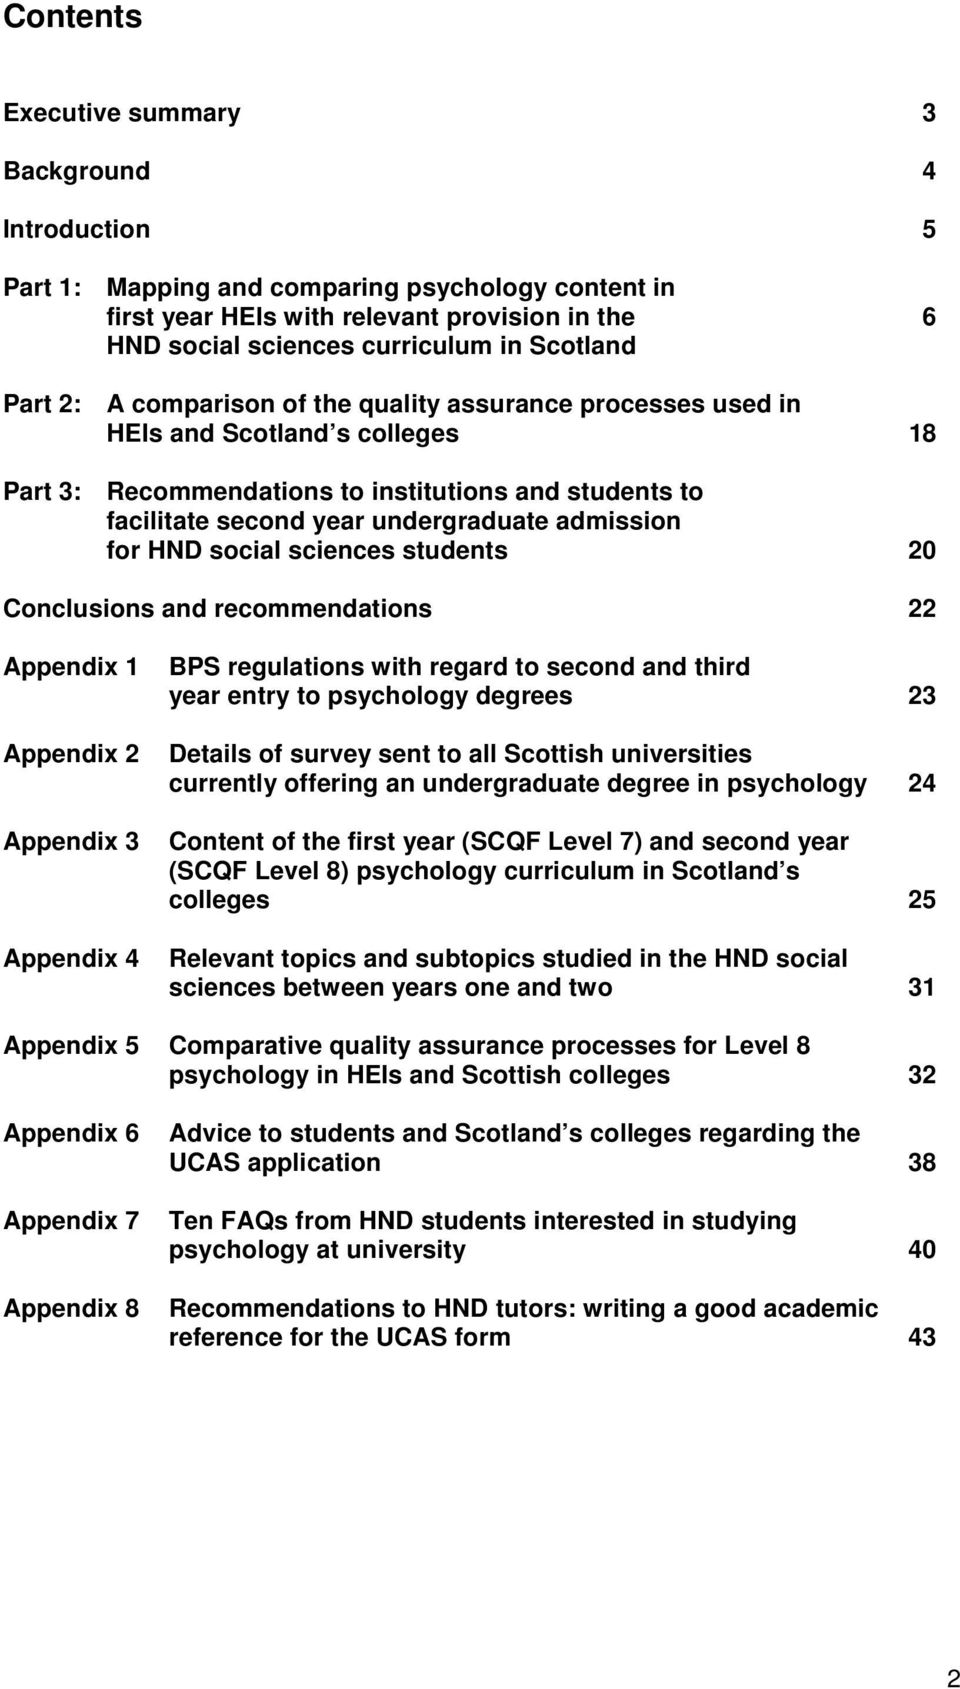 admission for HND social sciences students 20 Conclusions and recommendations 22 Appendix 1 Appendix 2 Appendix 3 Appendix 4 BPS regulations with regard to second and third year entry to psychology